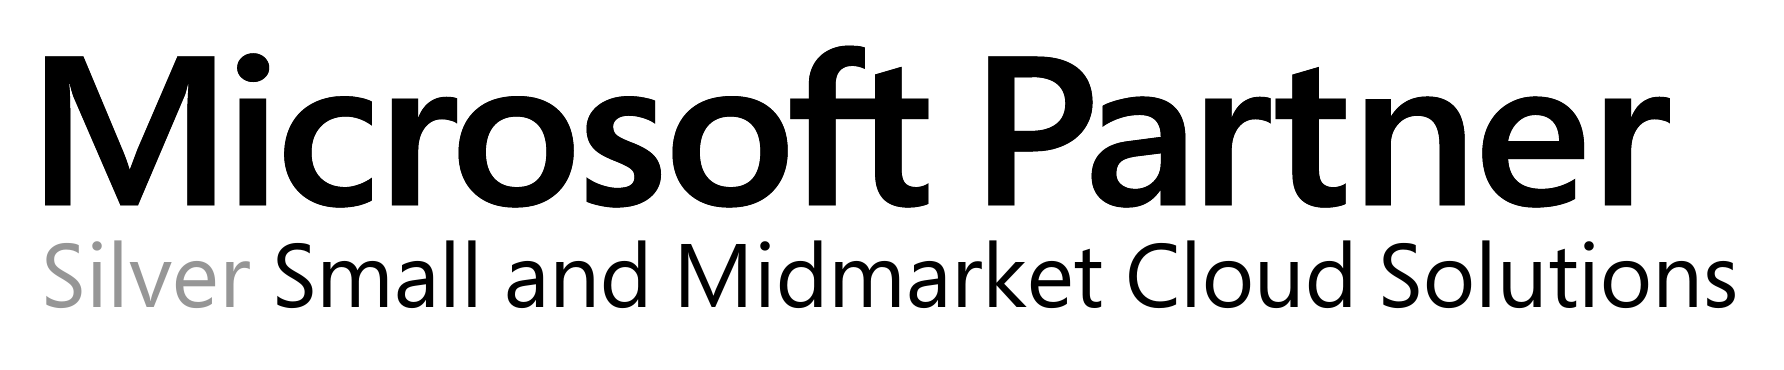 Microsoft Partner - Silver Small and Midmarket Cloud Solutions Competency